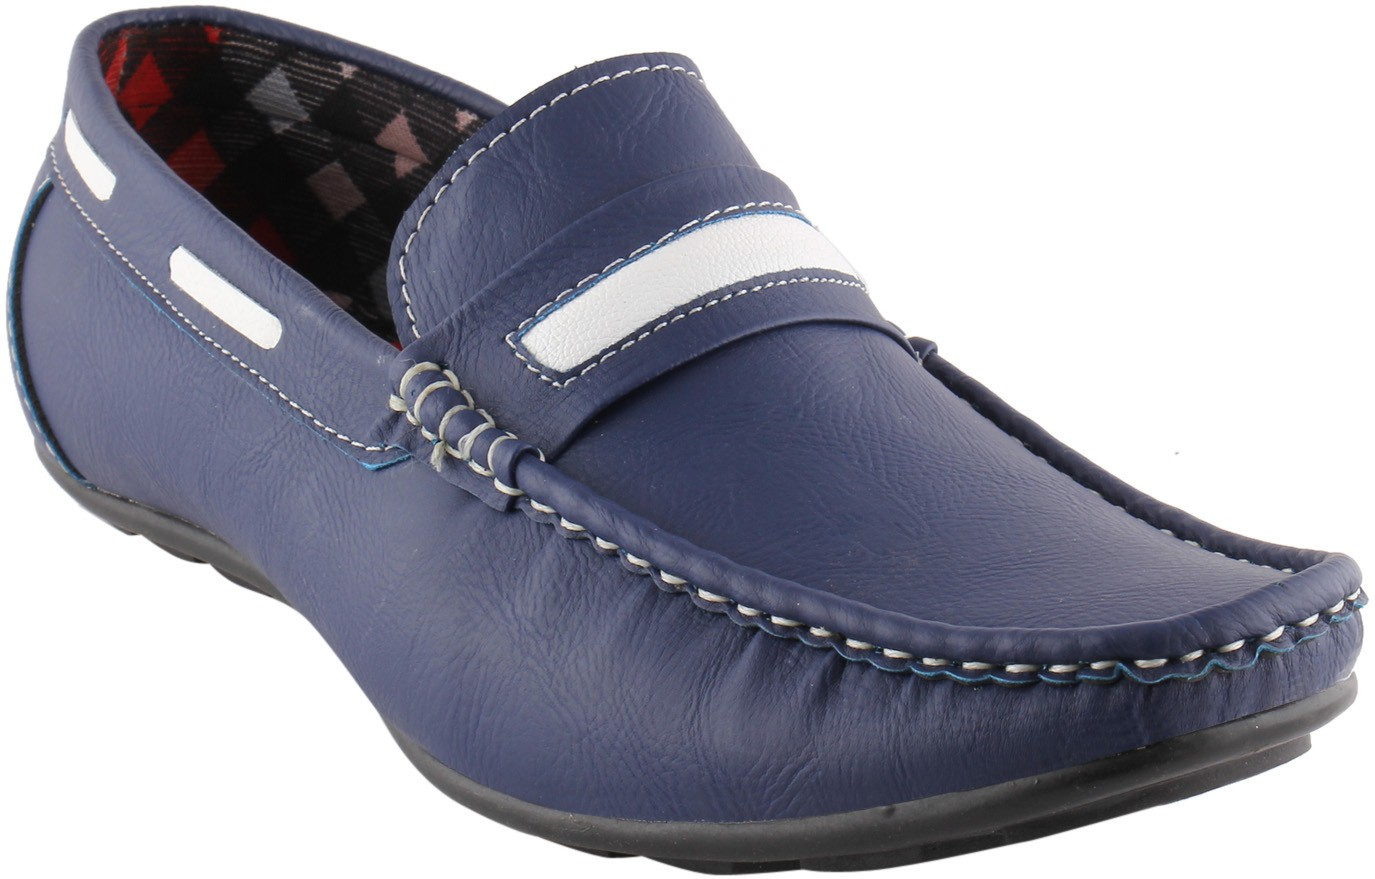 Look & Hook Loafers(Blue)